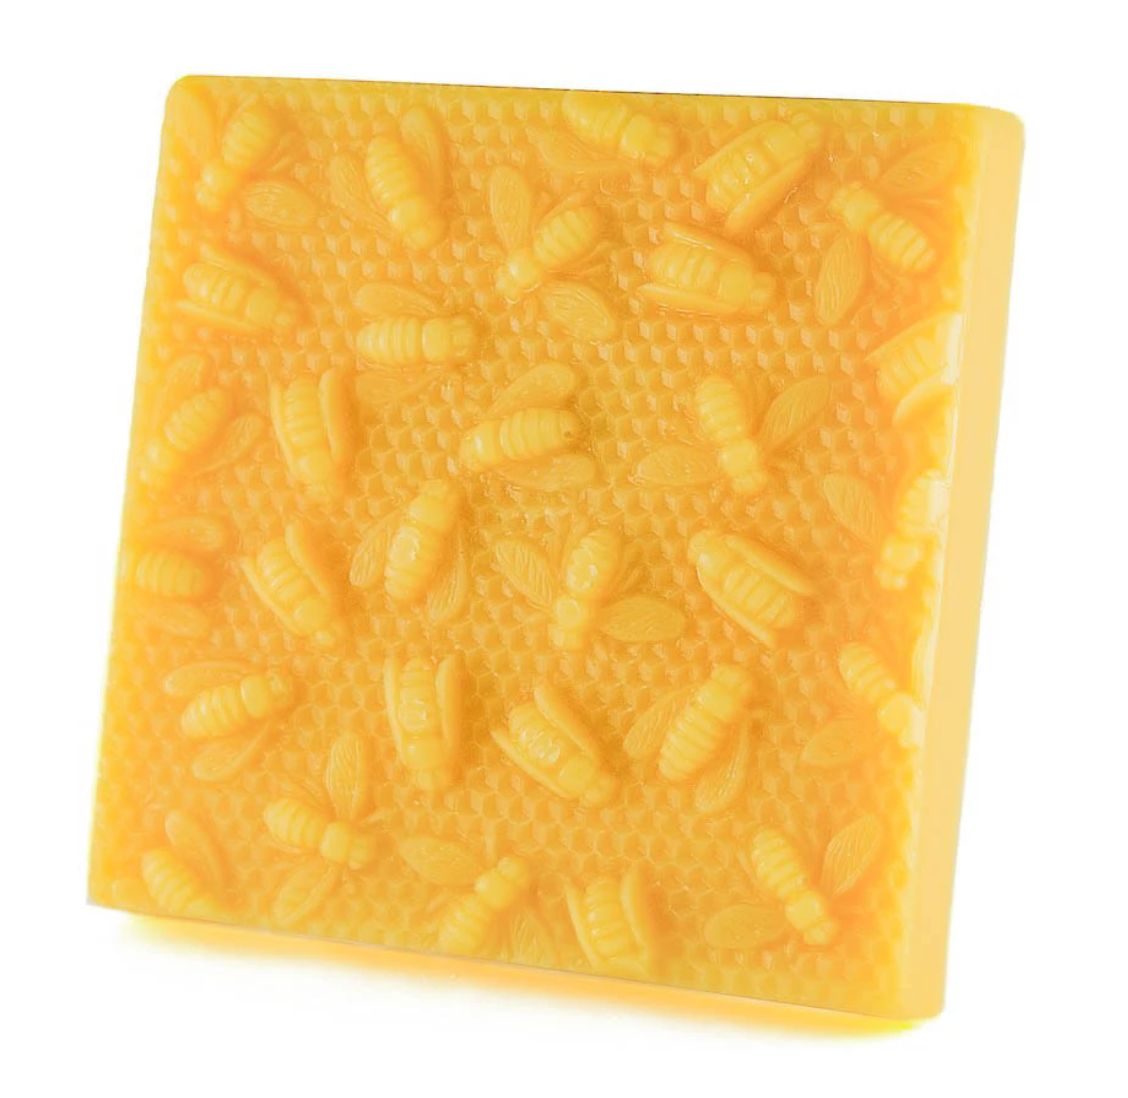 Beeswax Block 1 lb Bees On Honeycomb